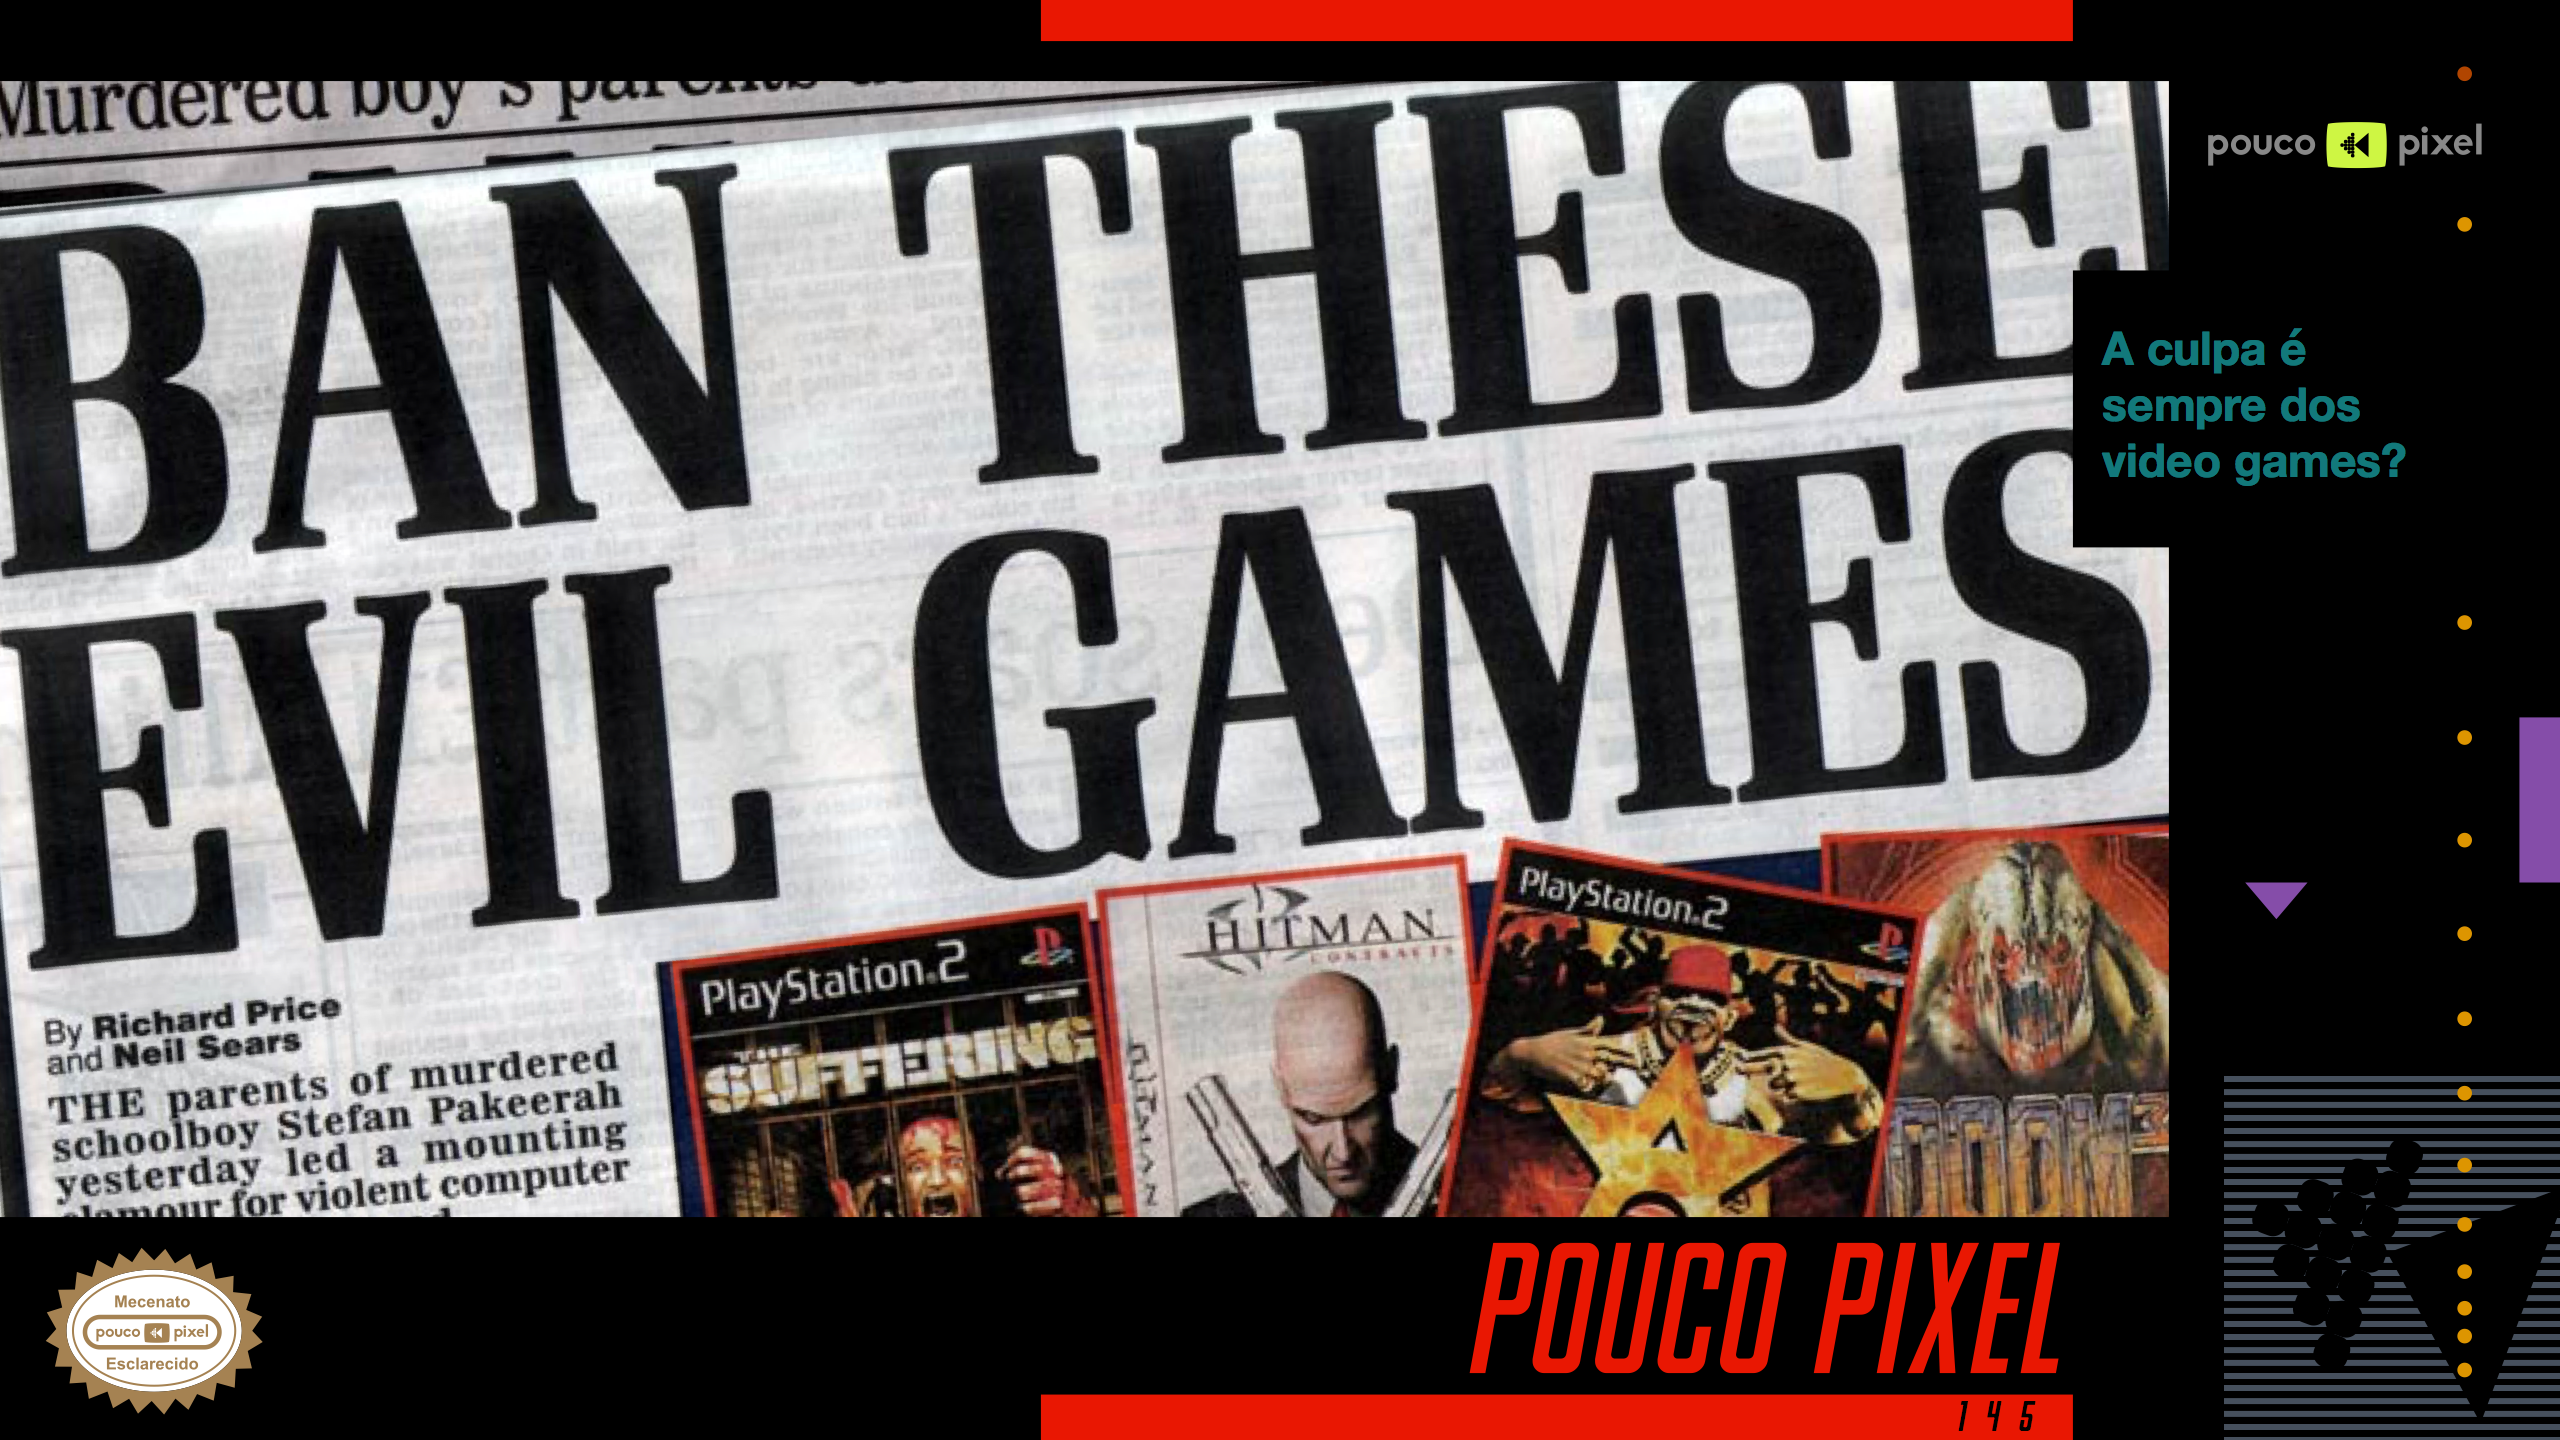 Pouco Pixel 145 – A culpa é sempre dos video games?